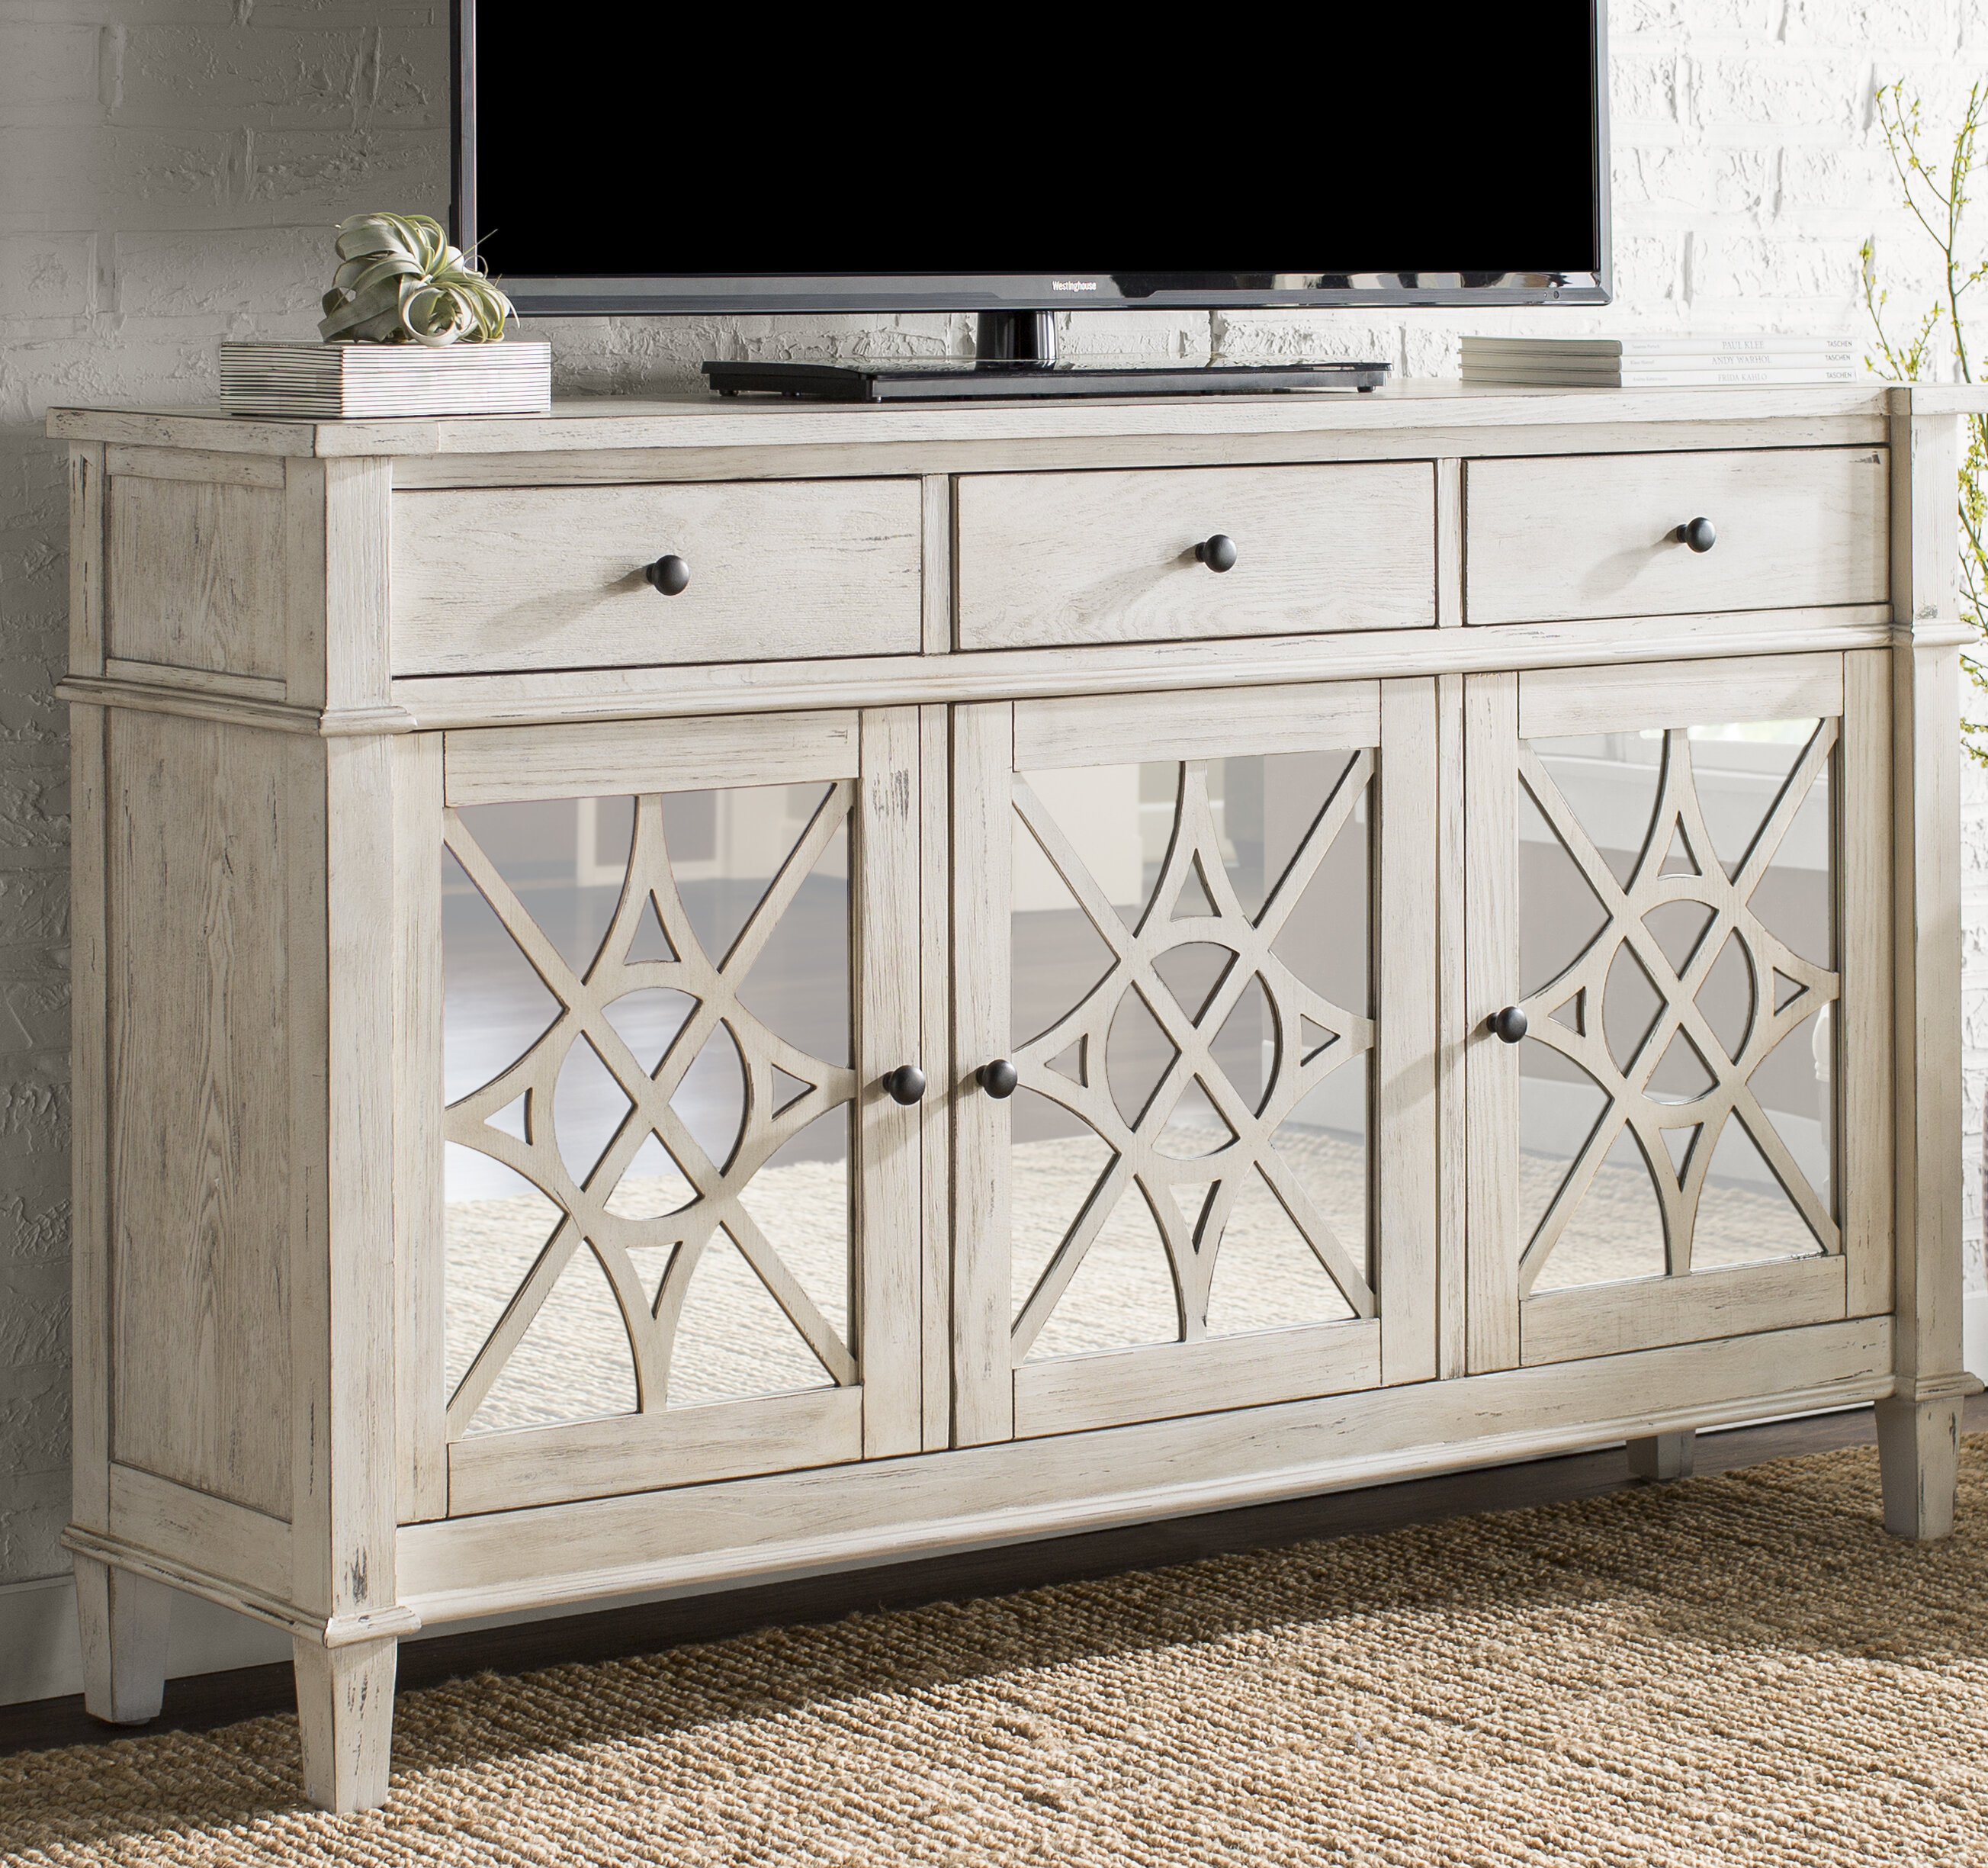 """Parmelee Tv Stand For Tvs Up To 65"""" With Regard To Parmelee Tv Stands For Tvs Up To 65"""" (View 3 of 30)"""